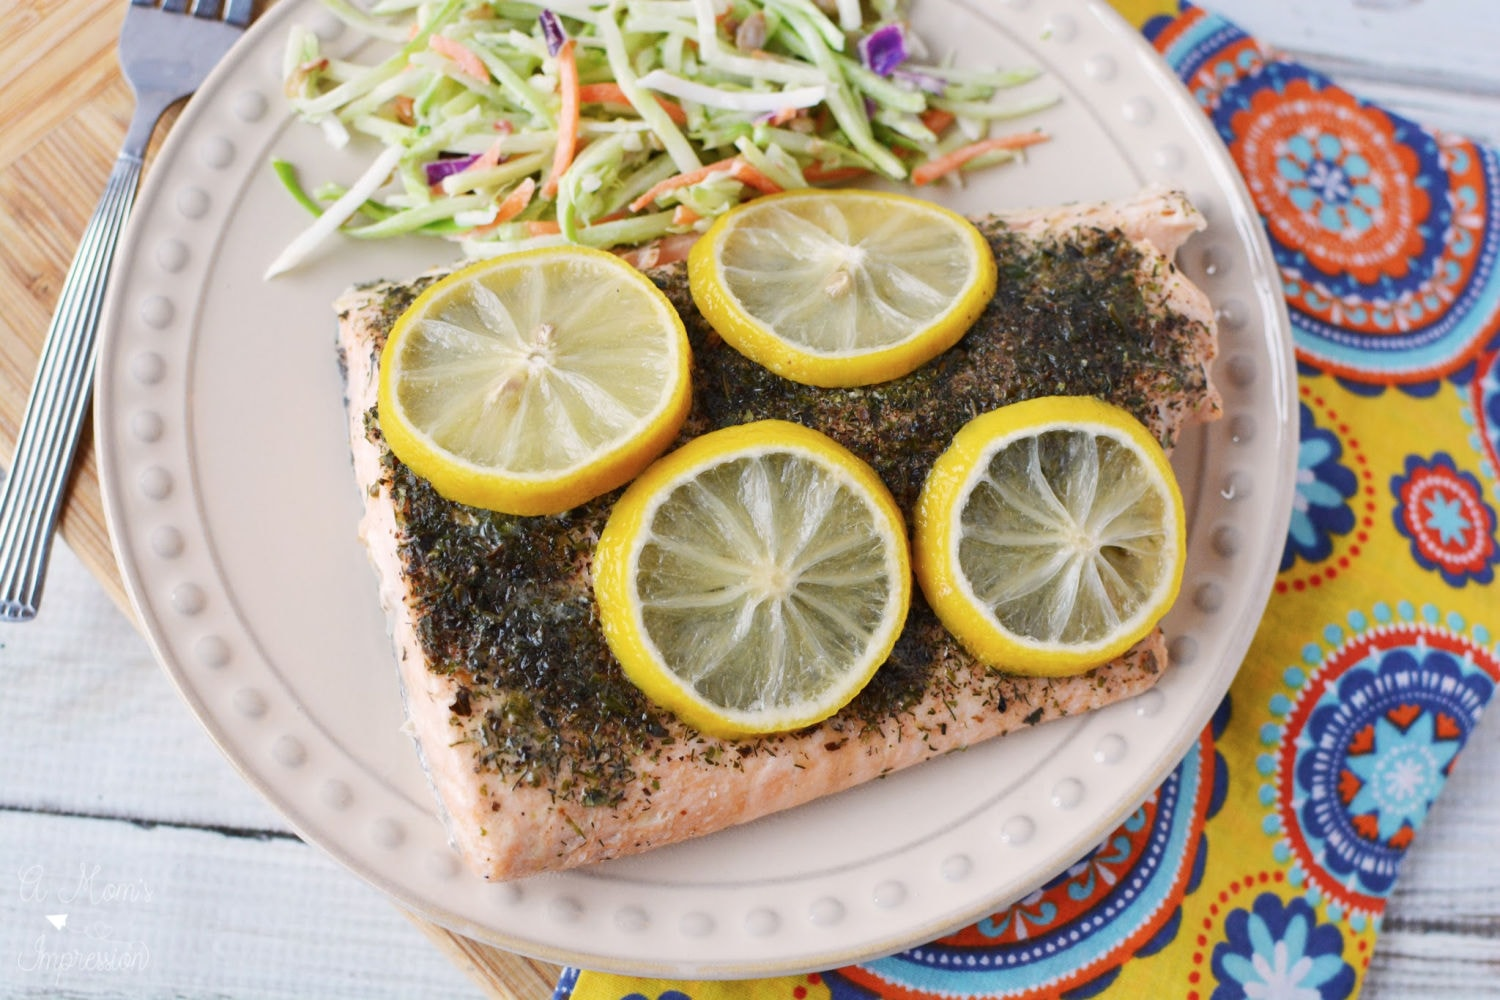 A plate of Pressure Cooker Salmon with Lemon sitting on a colorful napkin on a wood table